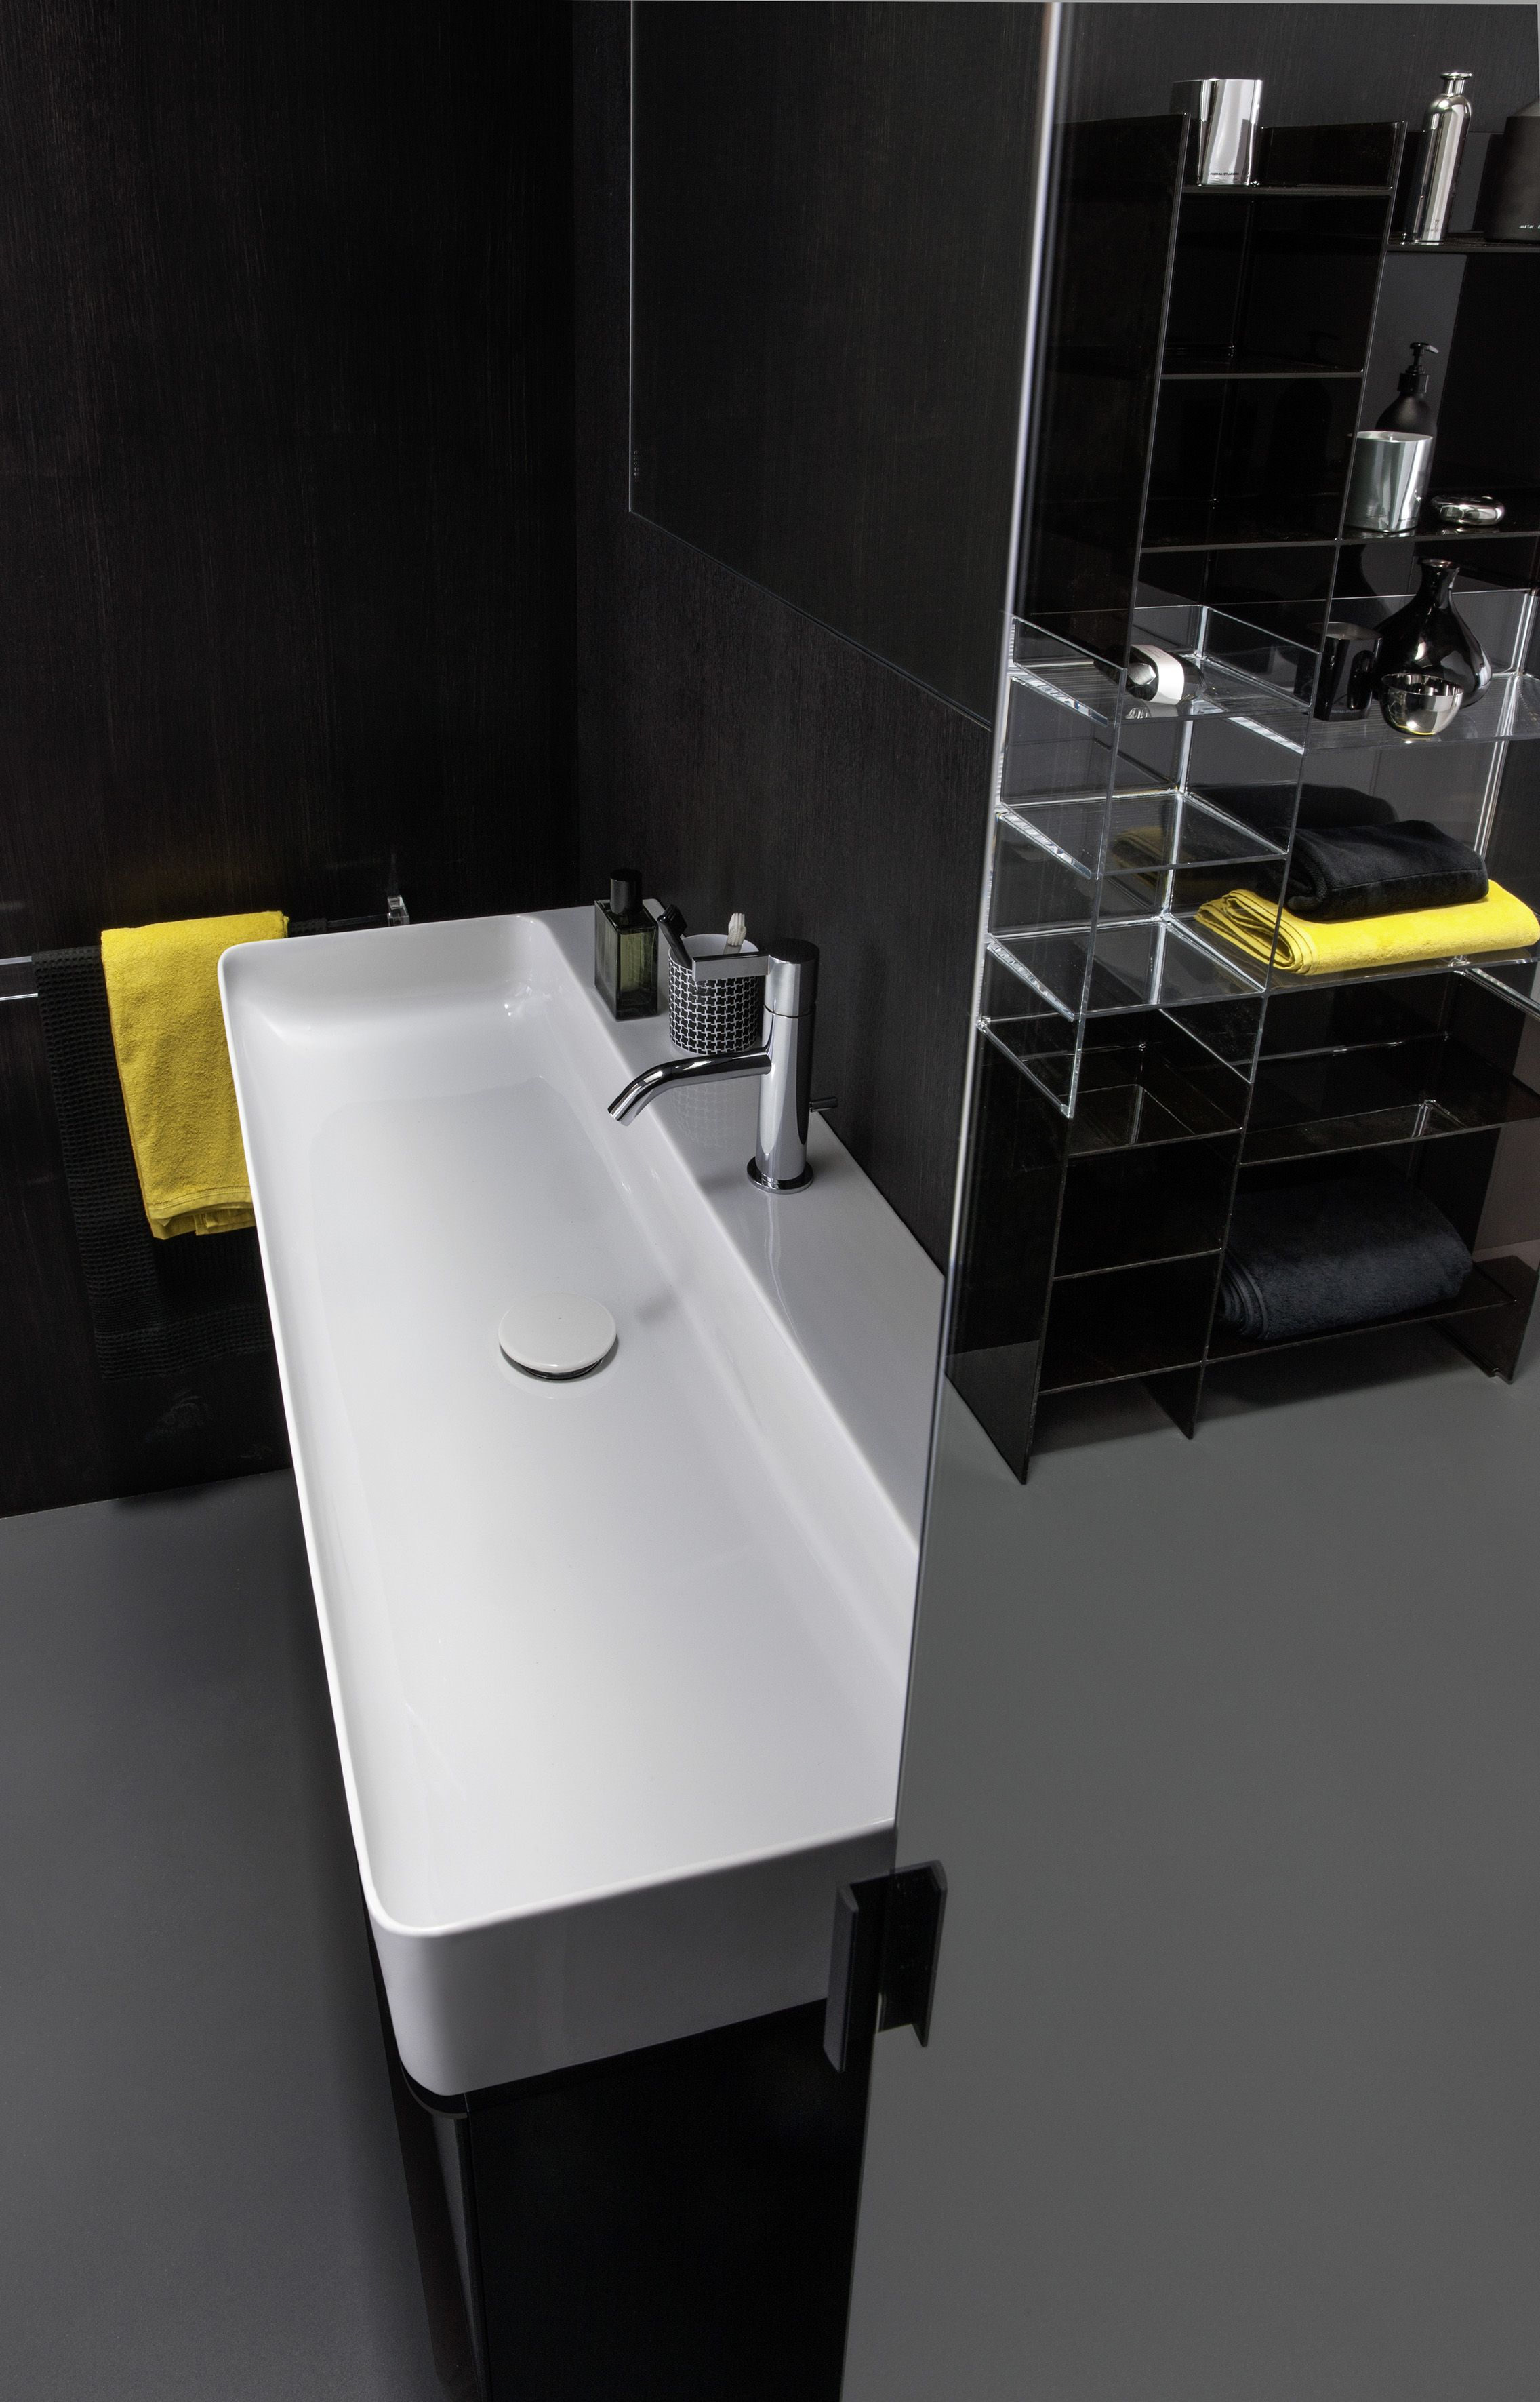 Laufen Waschbecken Ish 2015 Laufen Expands Ultra Slim Val Bathroom Collection By